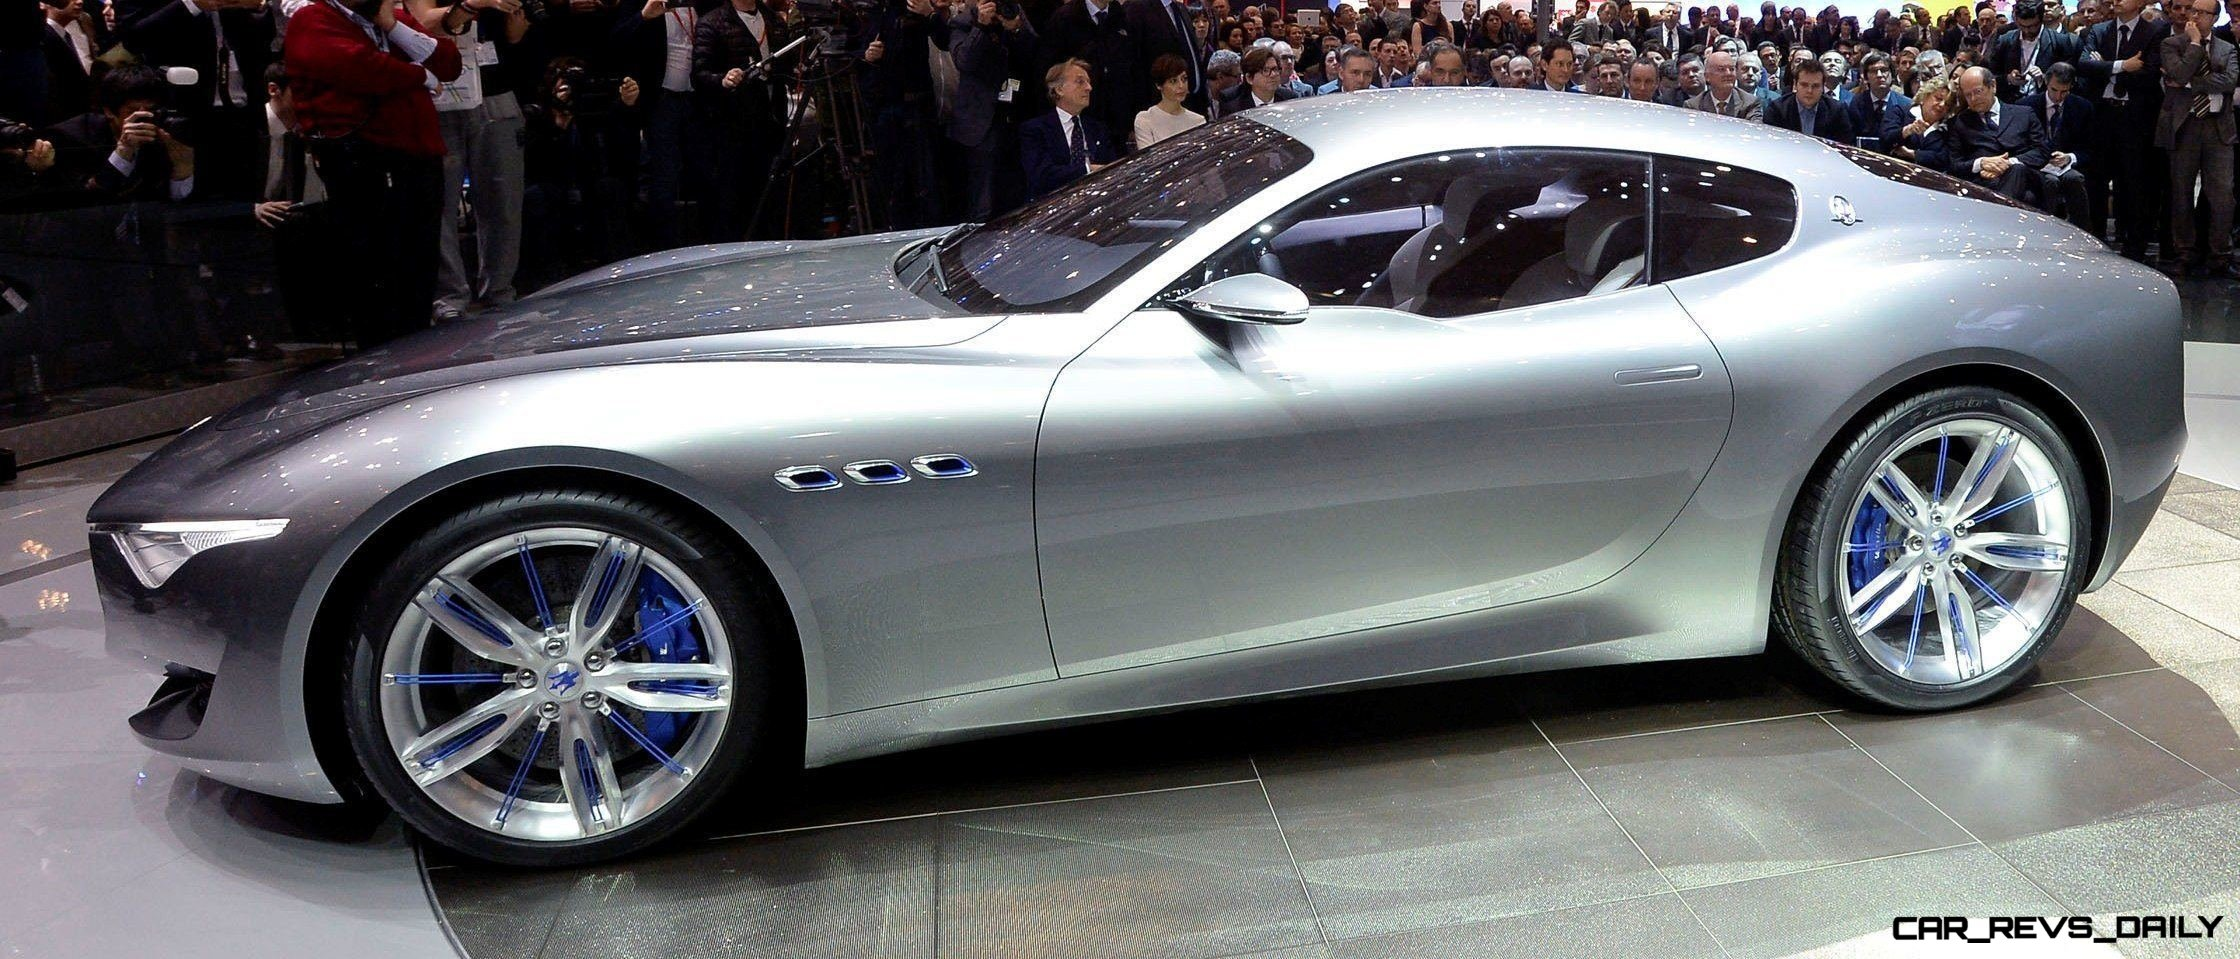 Alfieri Maserati Concept -- Analytical Assessment of the Trident's Flagship Prototype -- 52 Photos, Sketches, Reveal Images 1